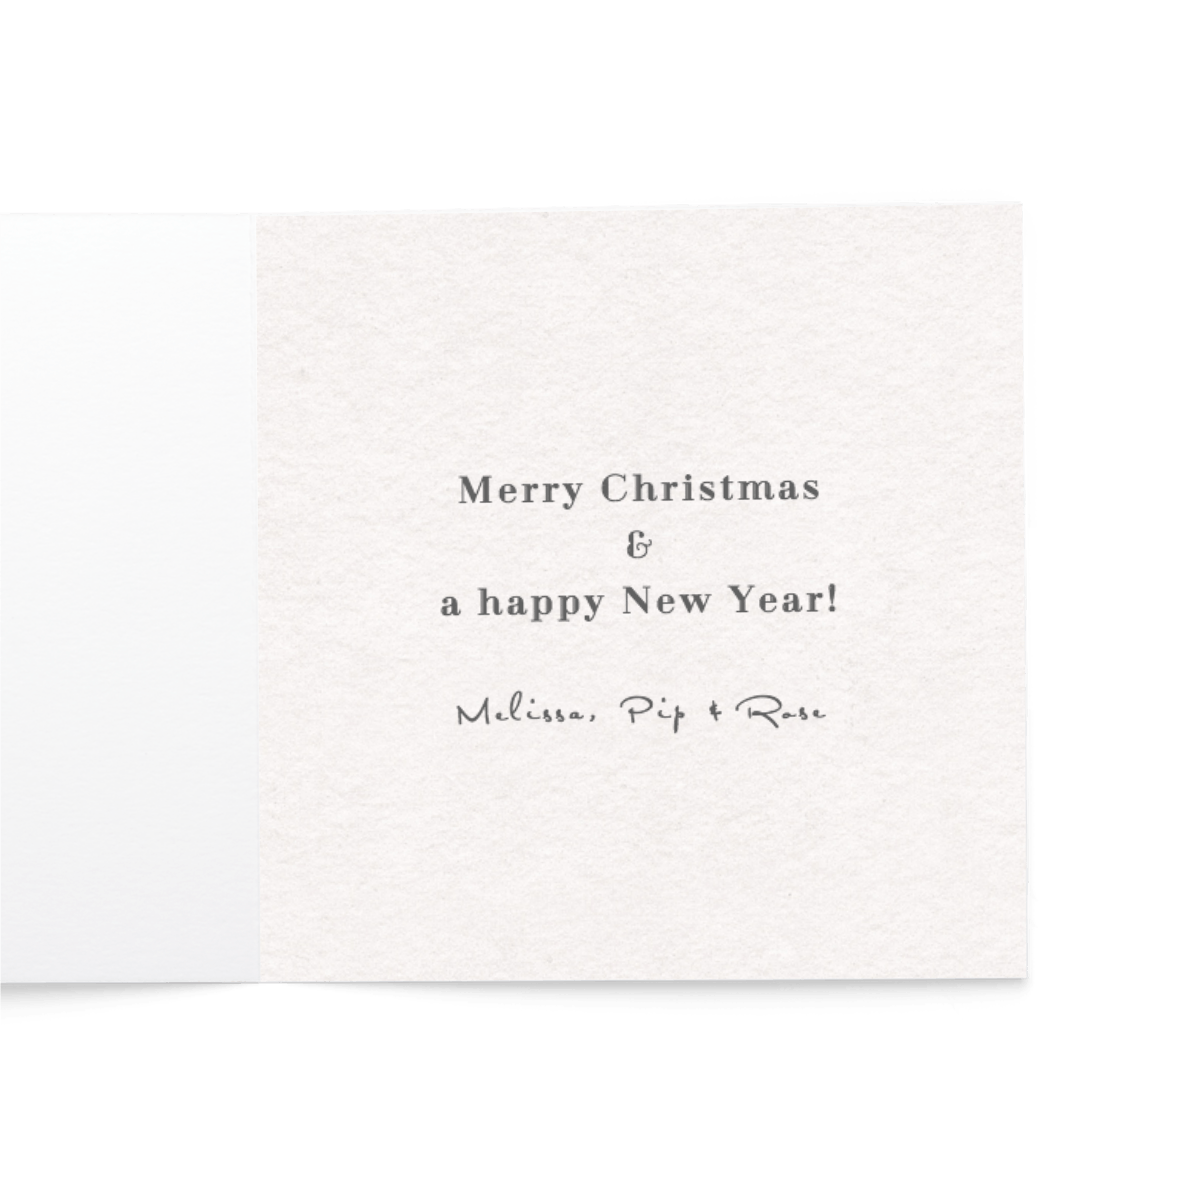 Https%3a%2f%2fwww.papier.com%2fproduct image%2f2586%2f21%2fchristmas photo frame 712 inside 1537270717.png?ixlib=rb 1.1